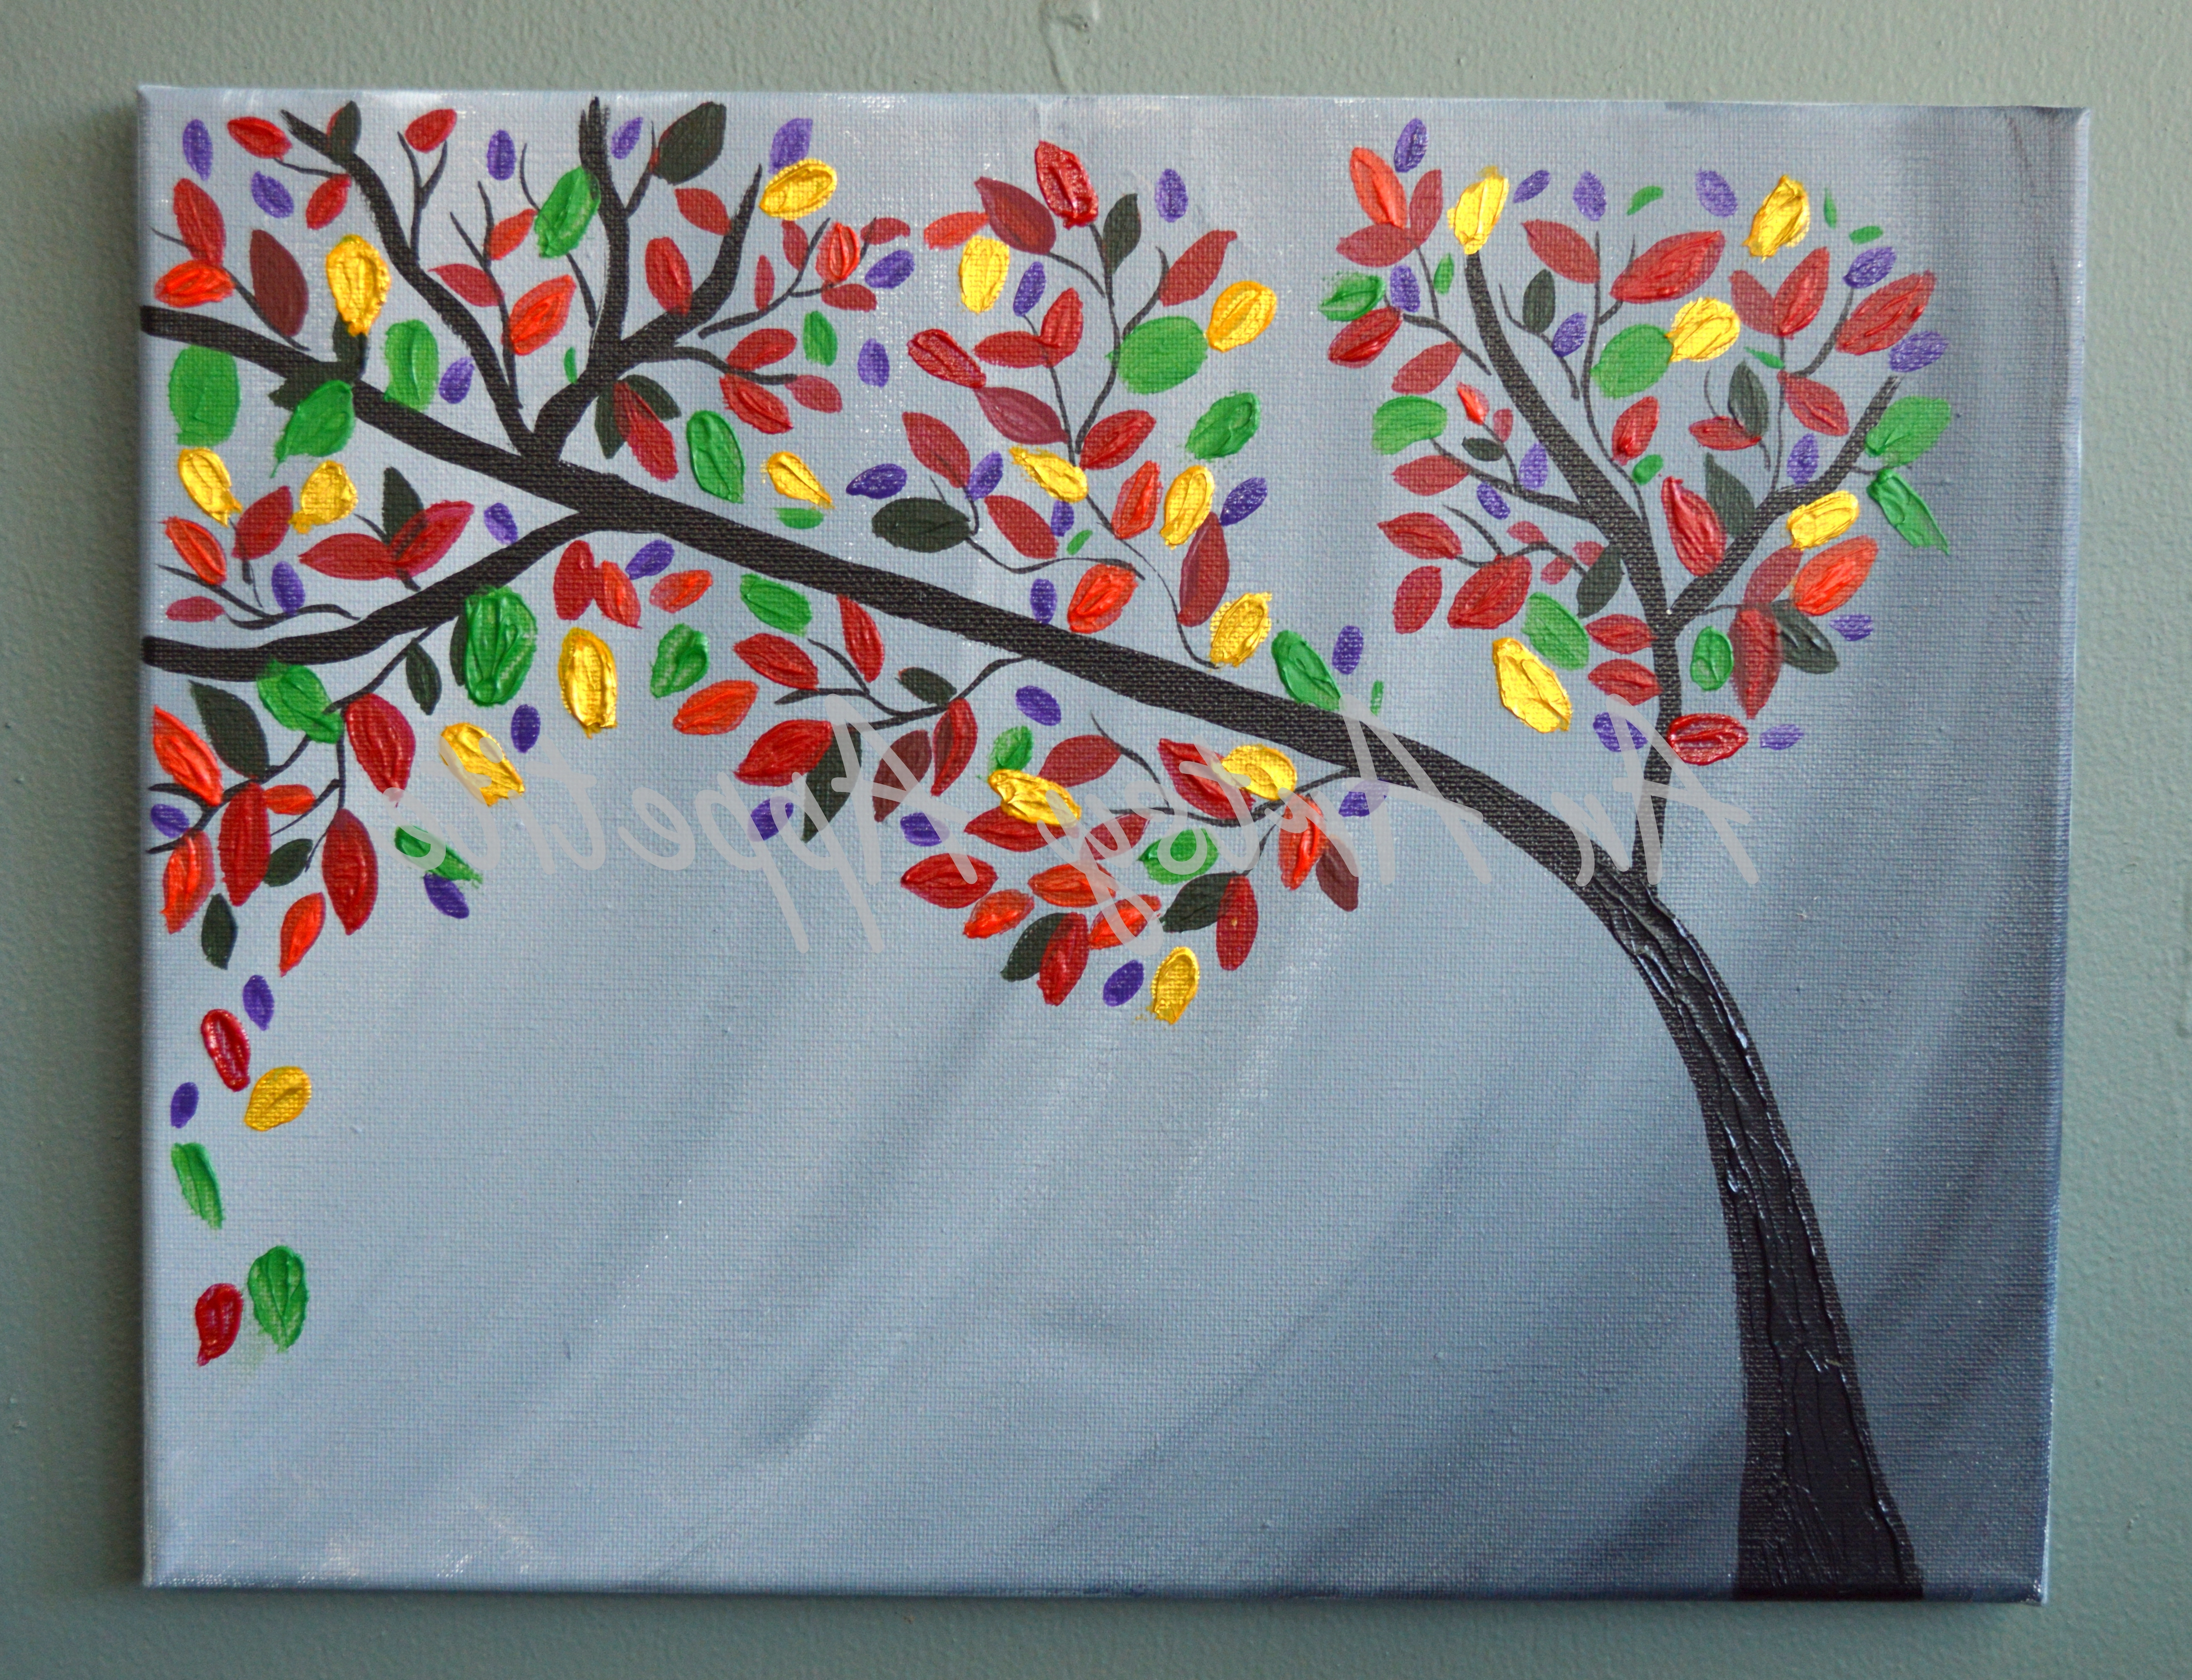 Widely Used Textured Fabric Wall Art Pertaining To Lovebirds On A Tree ~ Multi Canvas Textured Painting (View 14 of 15)